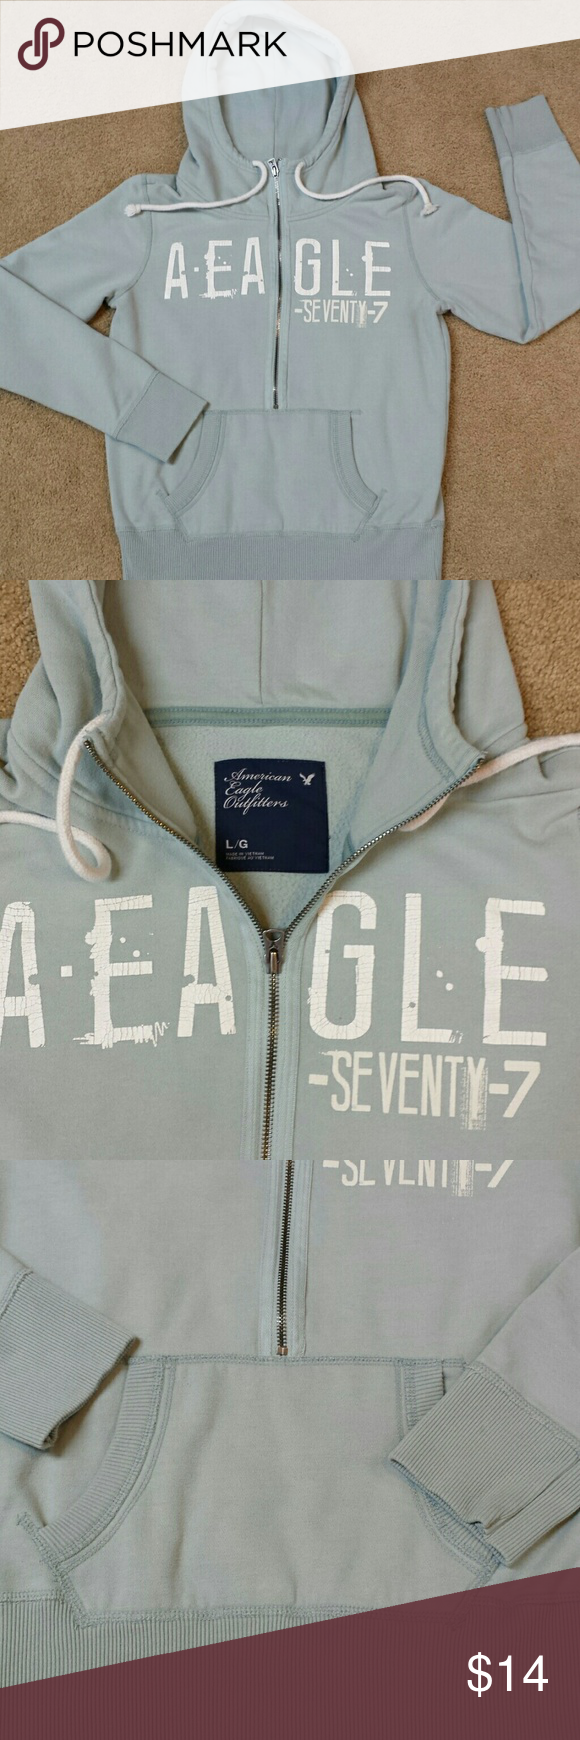 American Eagle Outfitters hoodie, LG. American Eagle Outfitters hoodie half zip with front pocket. 60 % cotton and 40 % polyester, good condition with 2 tiniest stains on sleeves barely if ever noticed when worn, pic 3, otherwise good condition!  Size large. American Eagle Outfitters Tops Sweatshirts & Hoodies